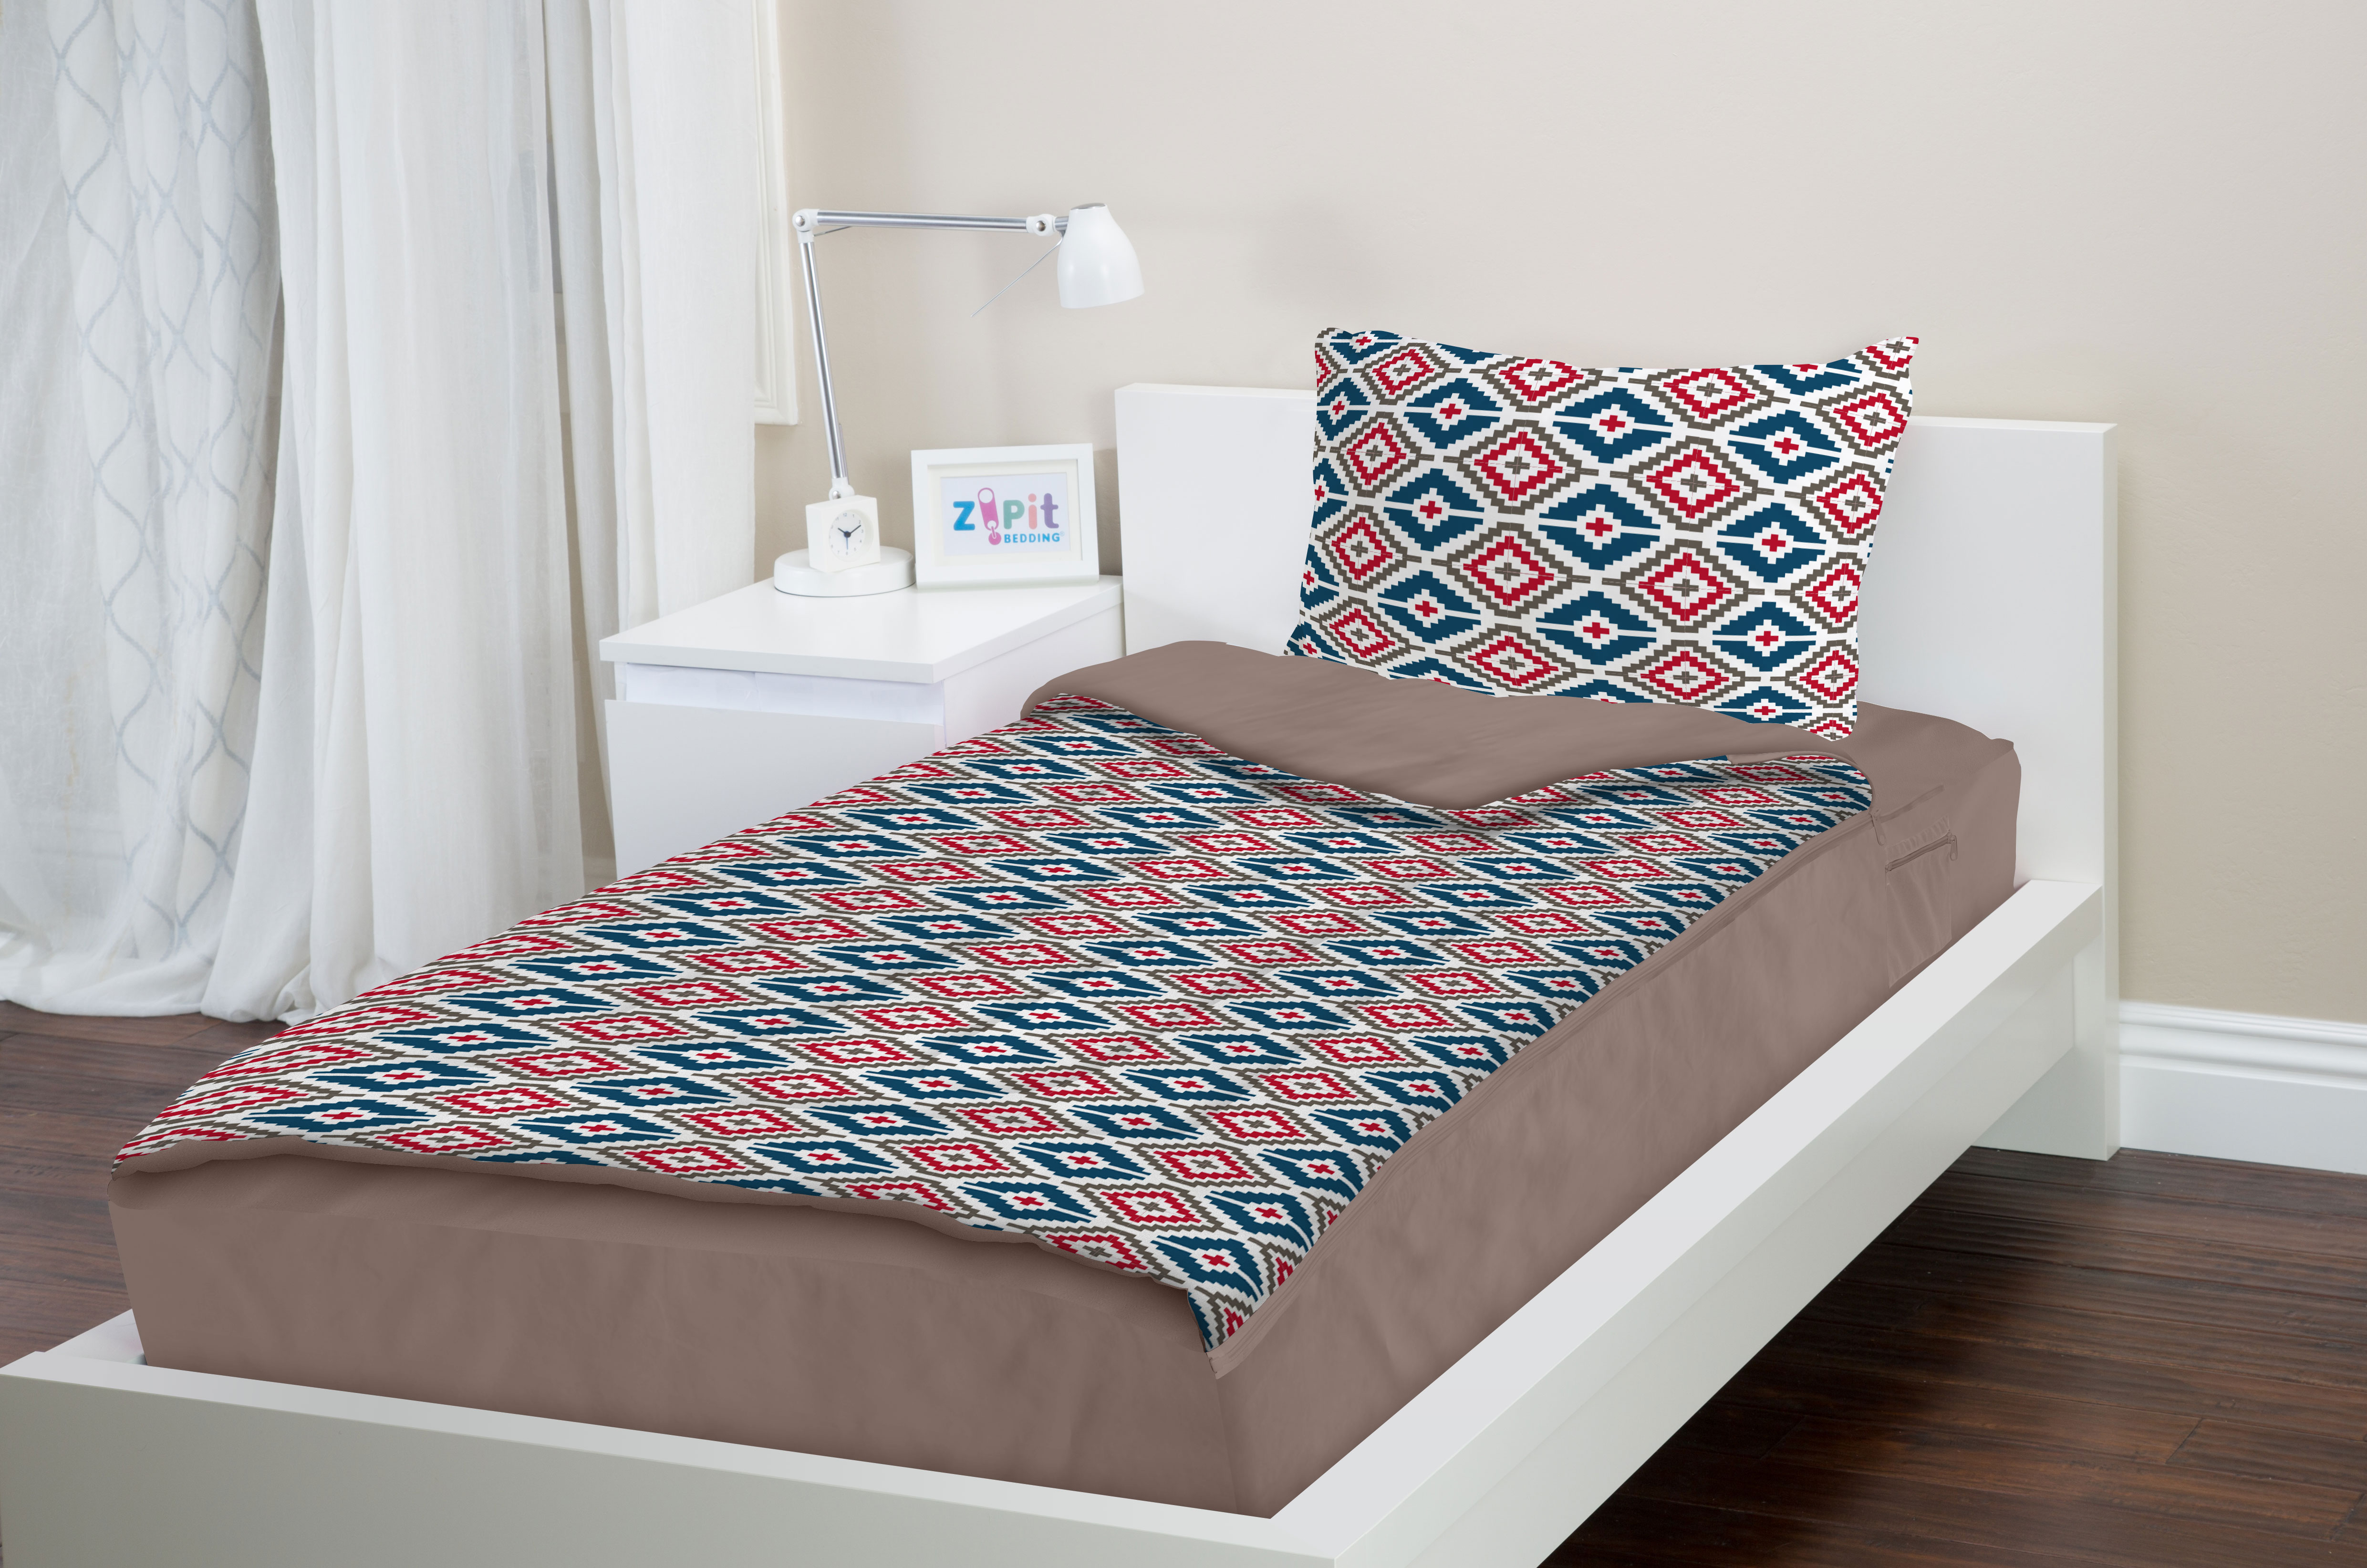 Bed sheets for teenagers - Zipit Bedding Set Zip Up Your Sheets And